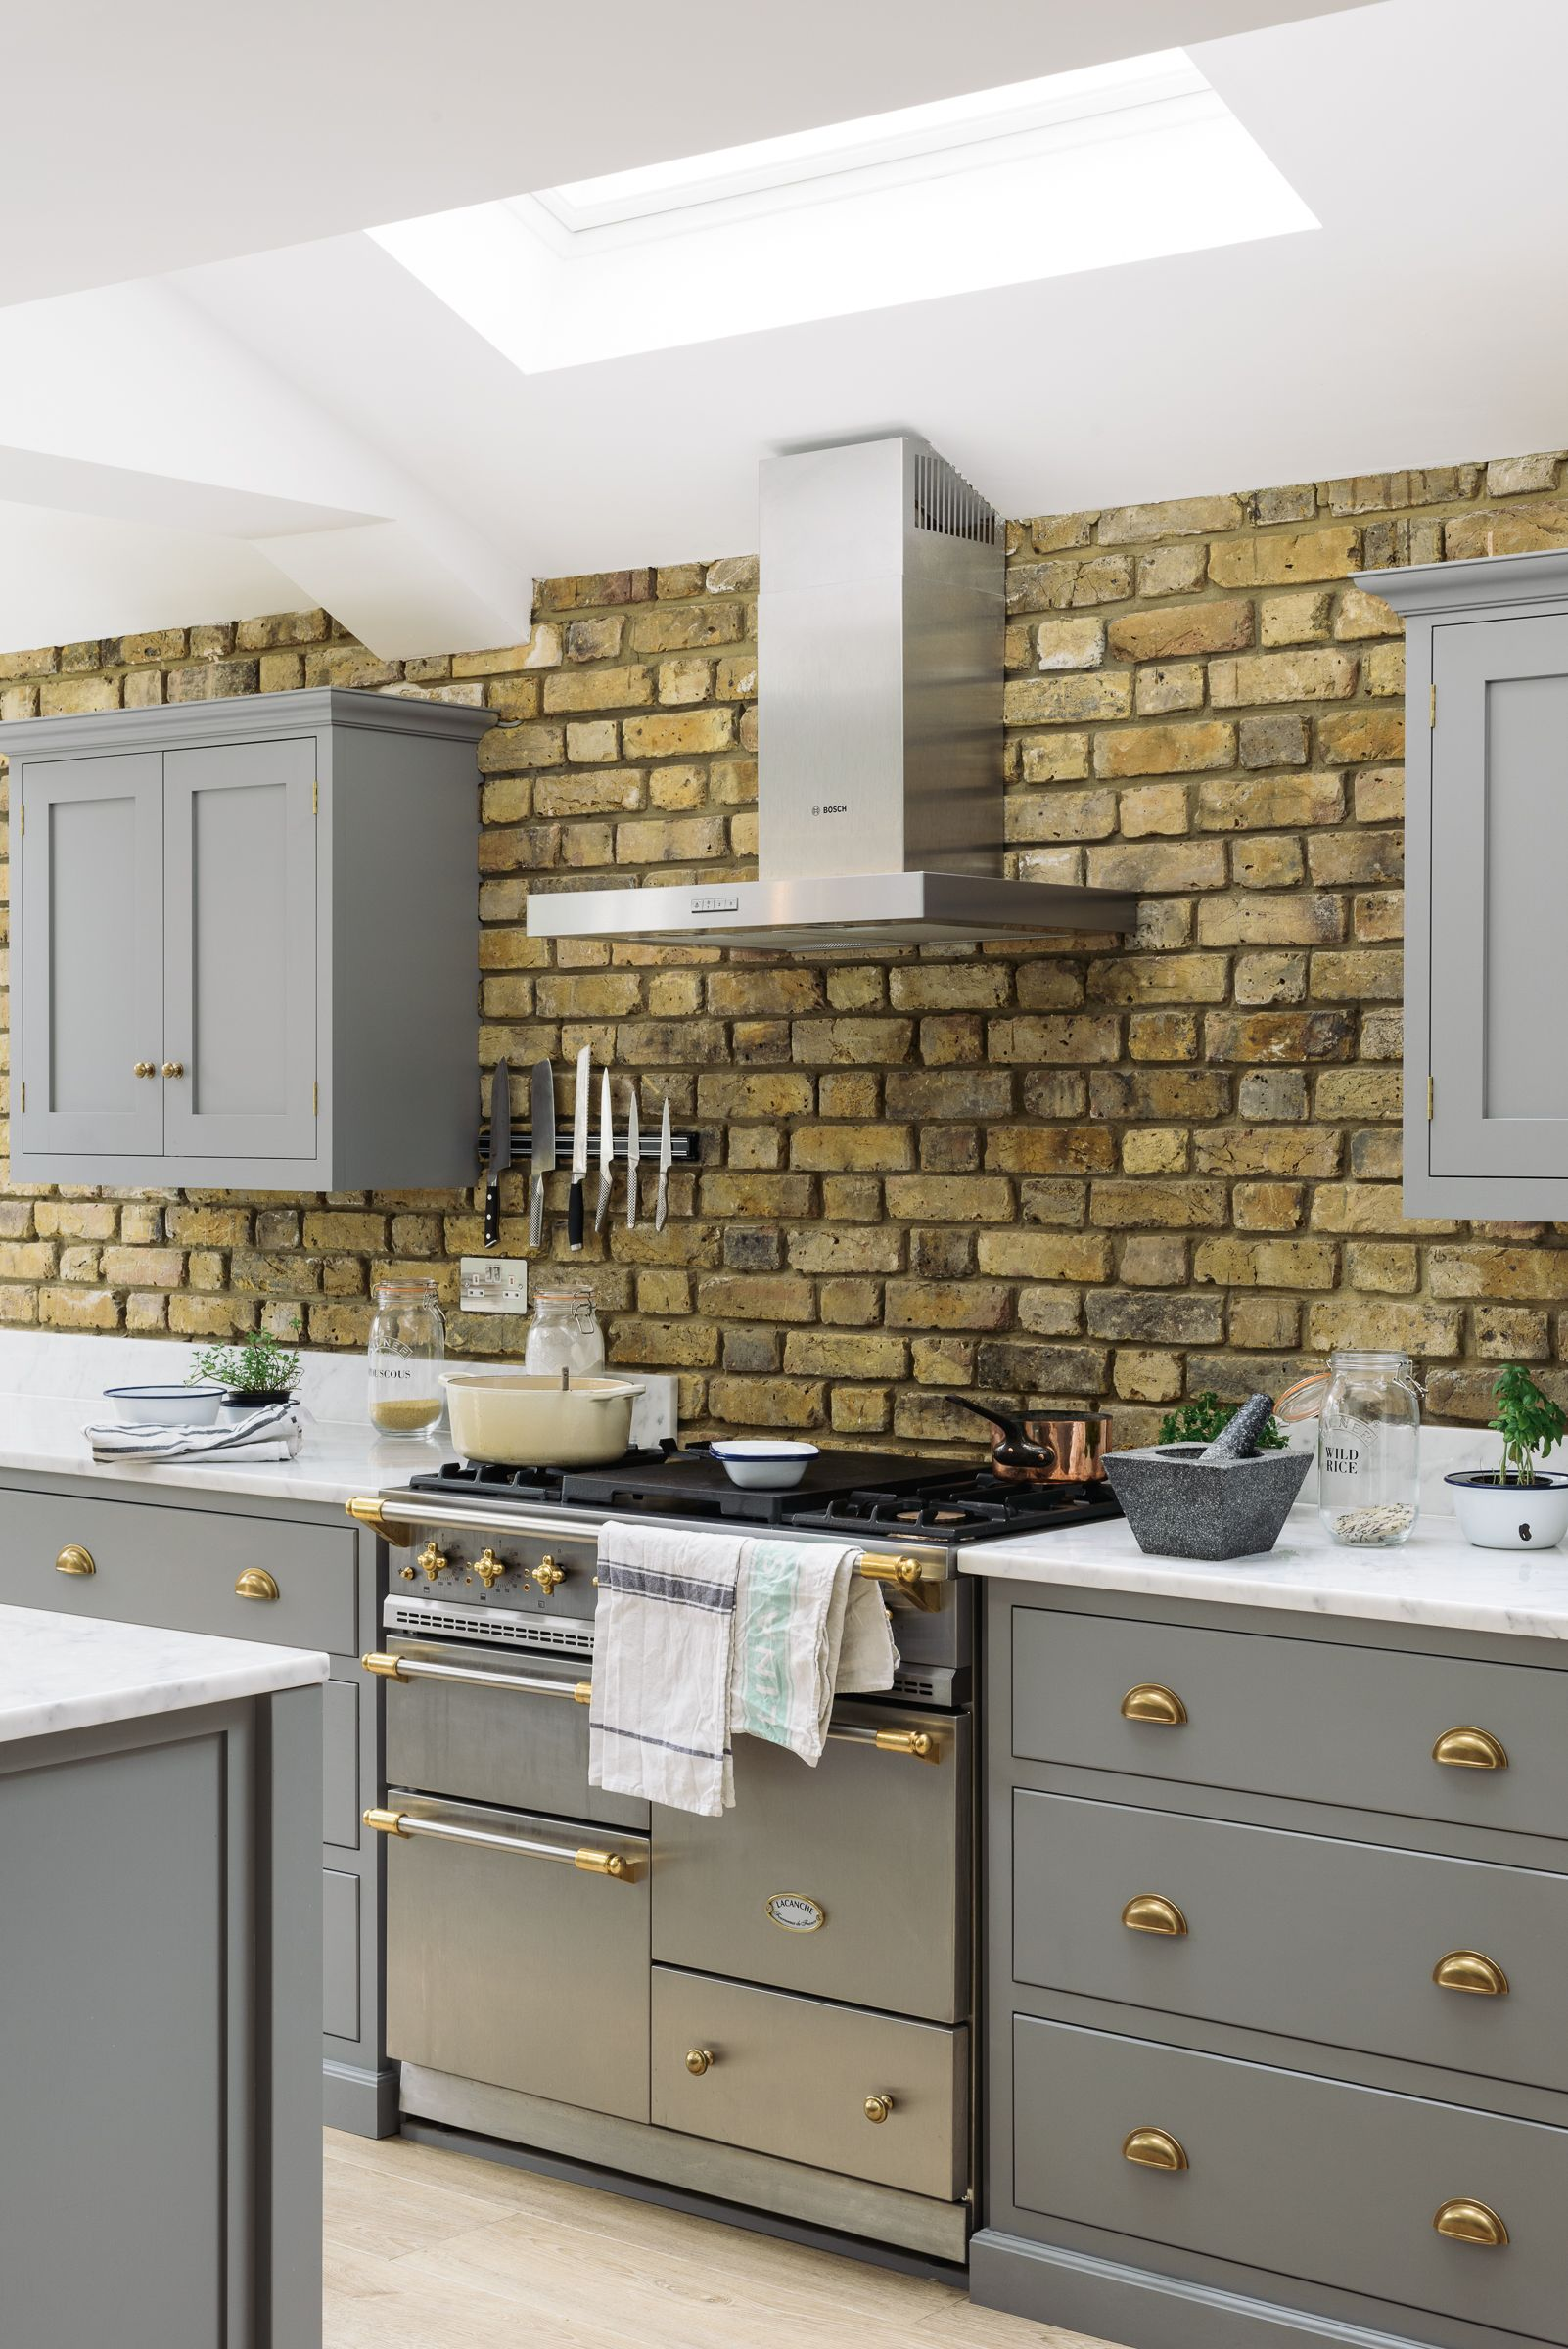 This stylish Lacanche range cooker looks so wonderful amongst our ...